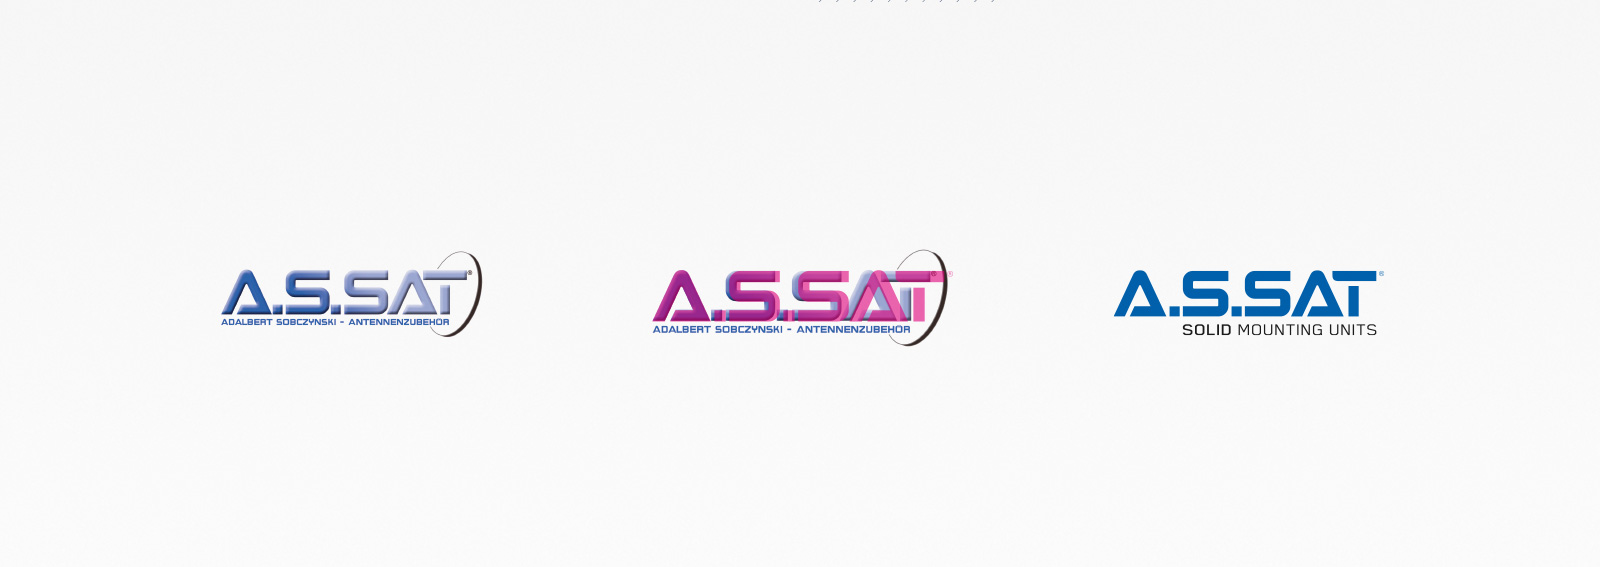 A.S.SAT Logo Redesign